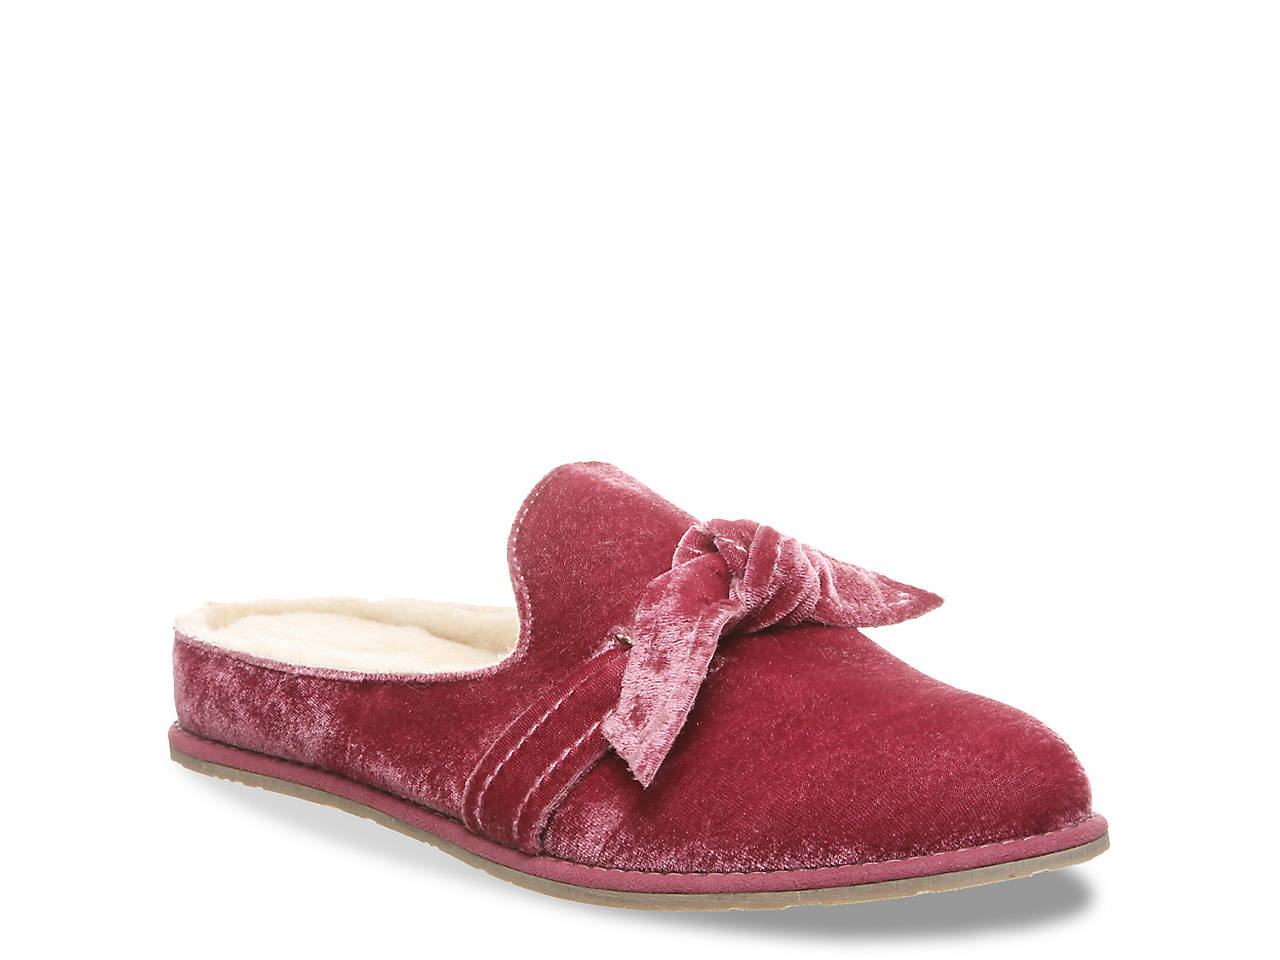 a2beadf852271f Bearpaw Liberty Tie Scuff Slipper Women s Shoes